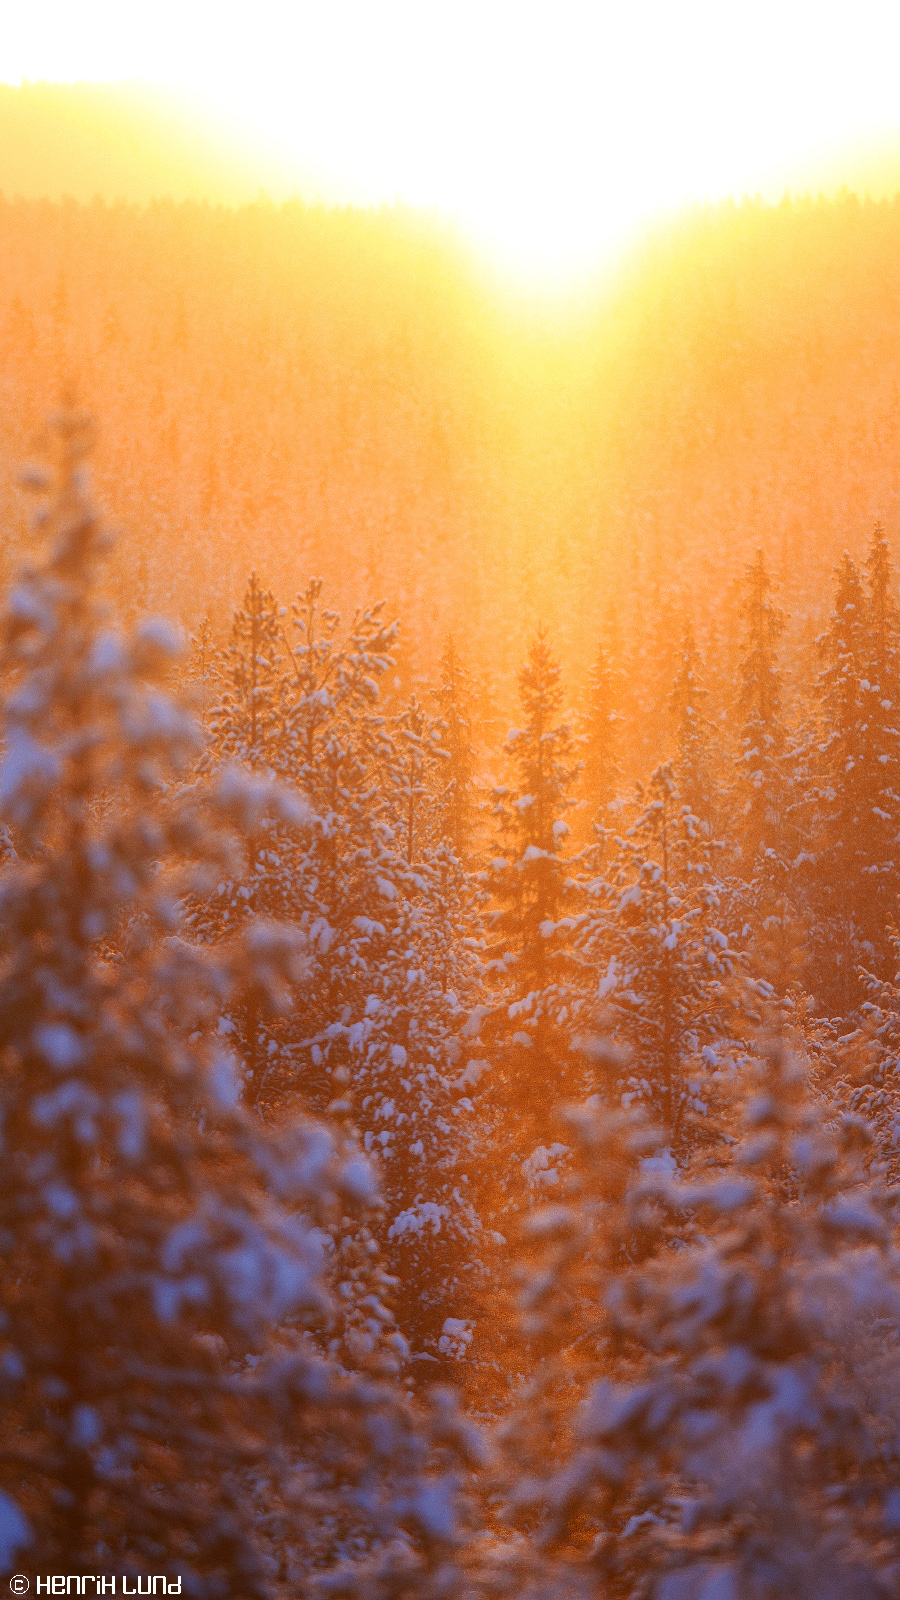 Backlit snowforest in -26, Norsjö, Sweden, January 2015.